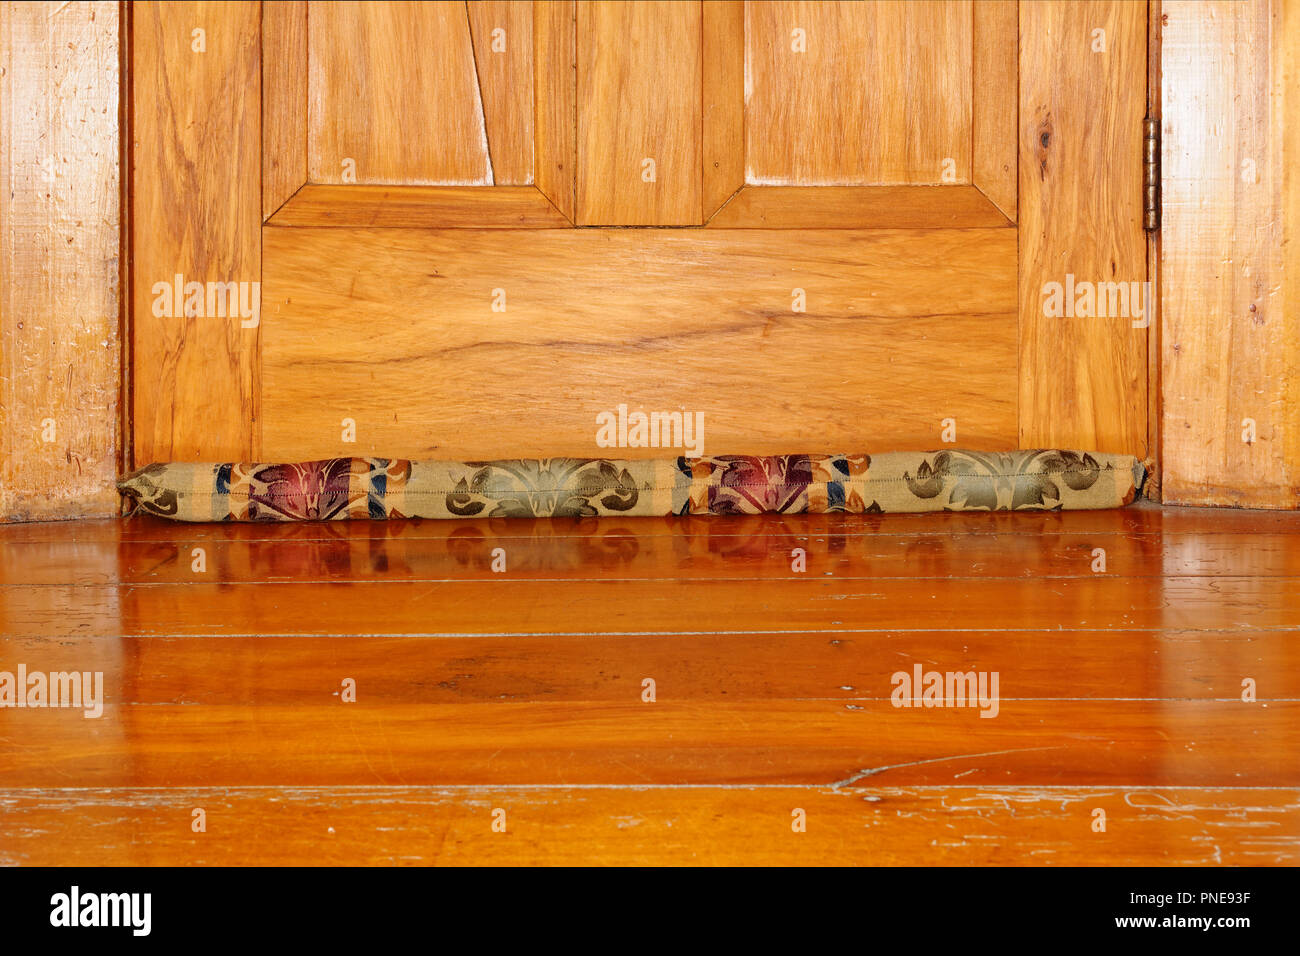 Draught excluder on wooden floor - Stock Image